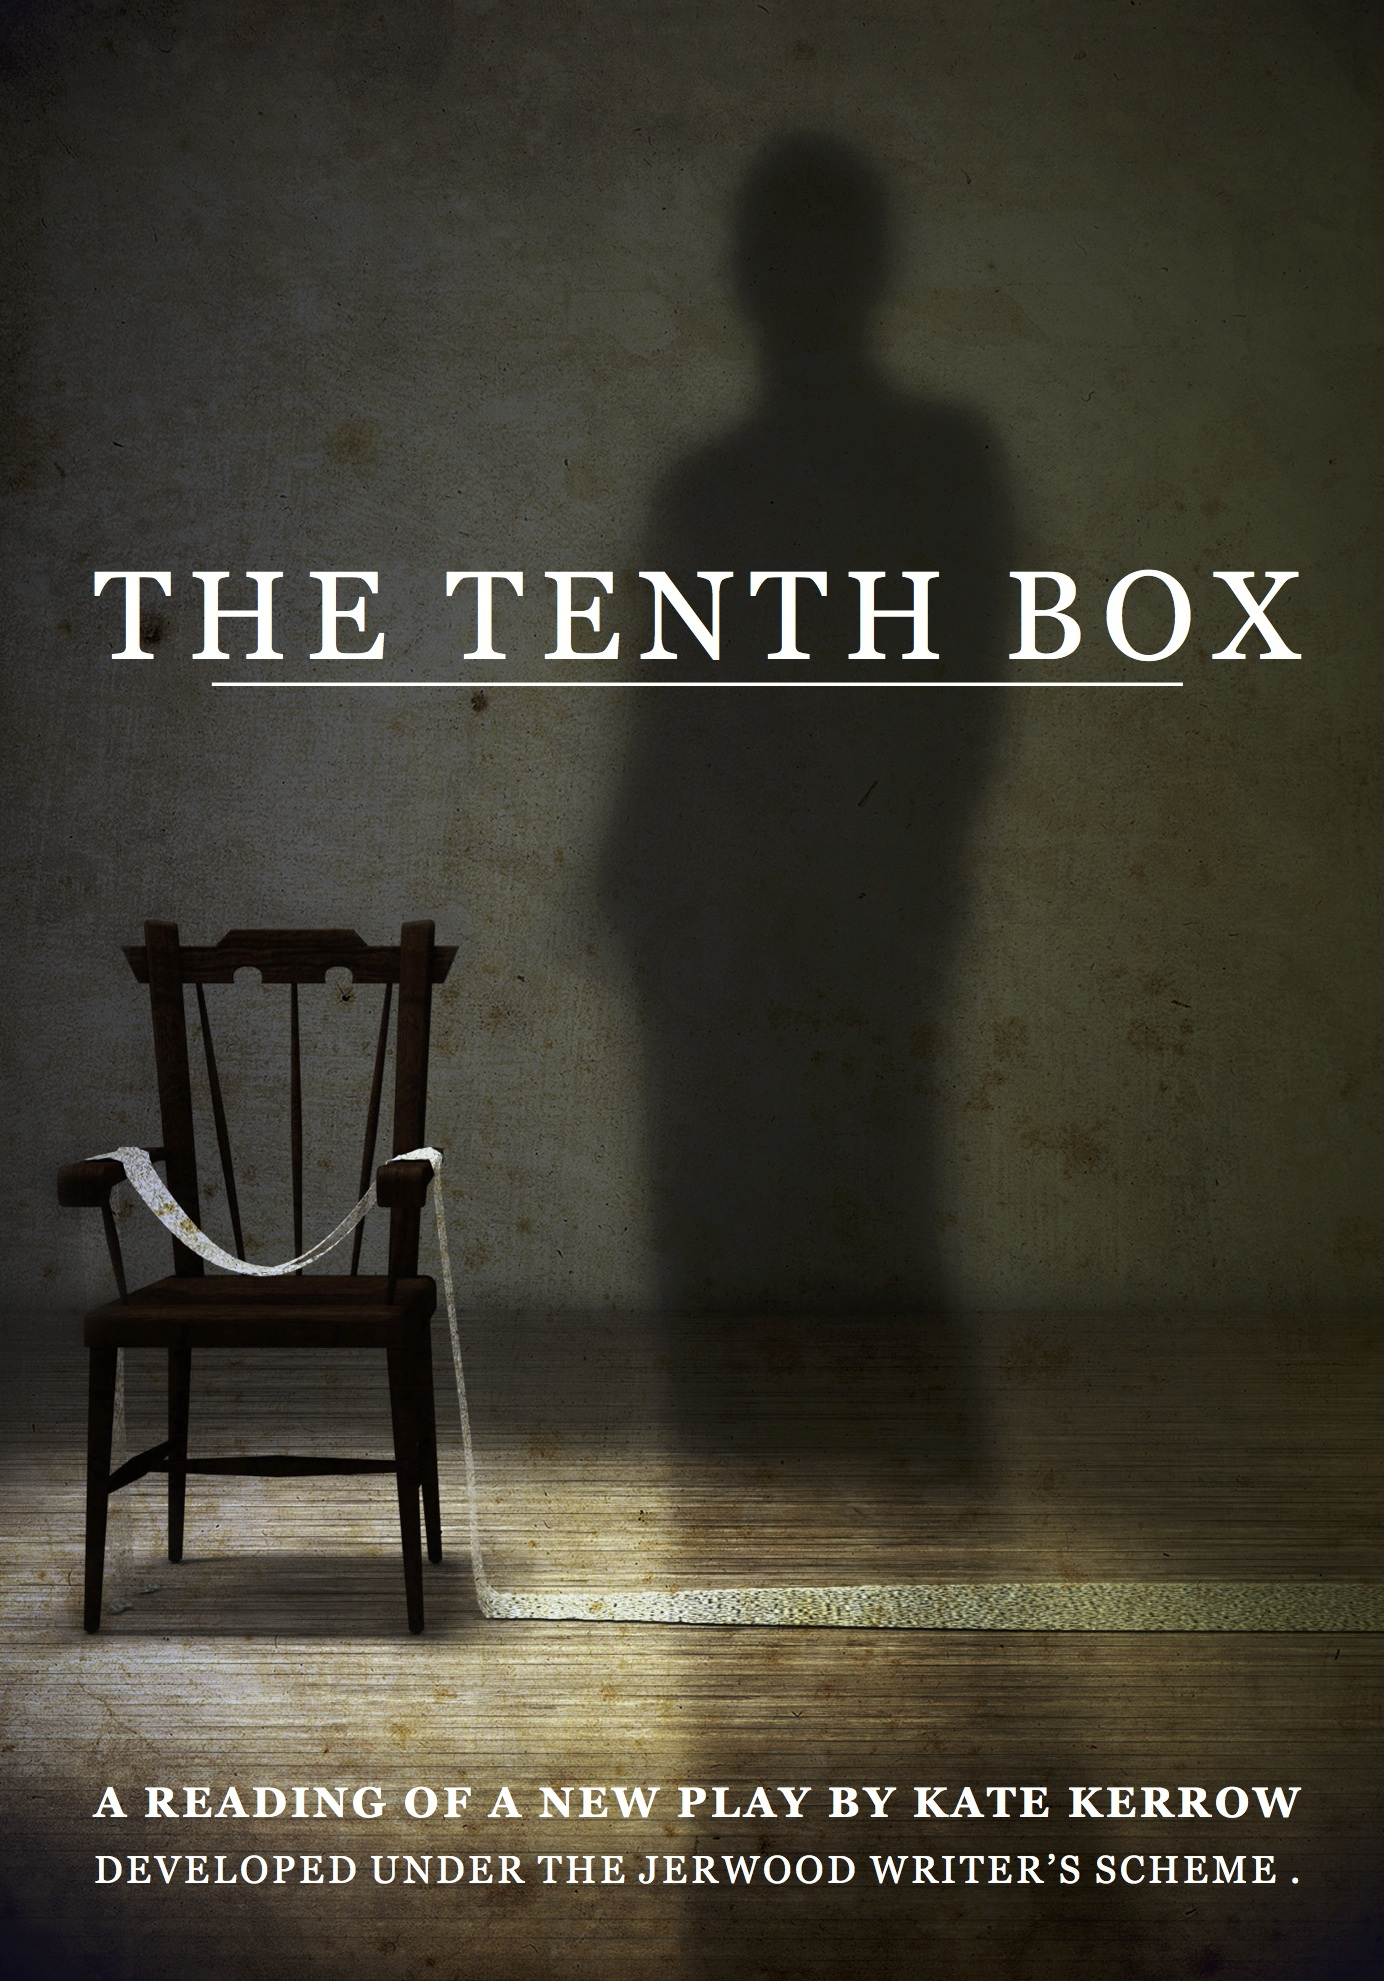 The Tenth Box (Theatre)